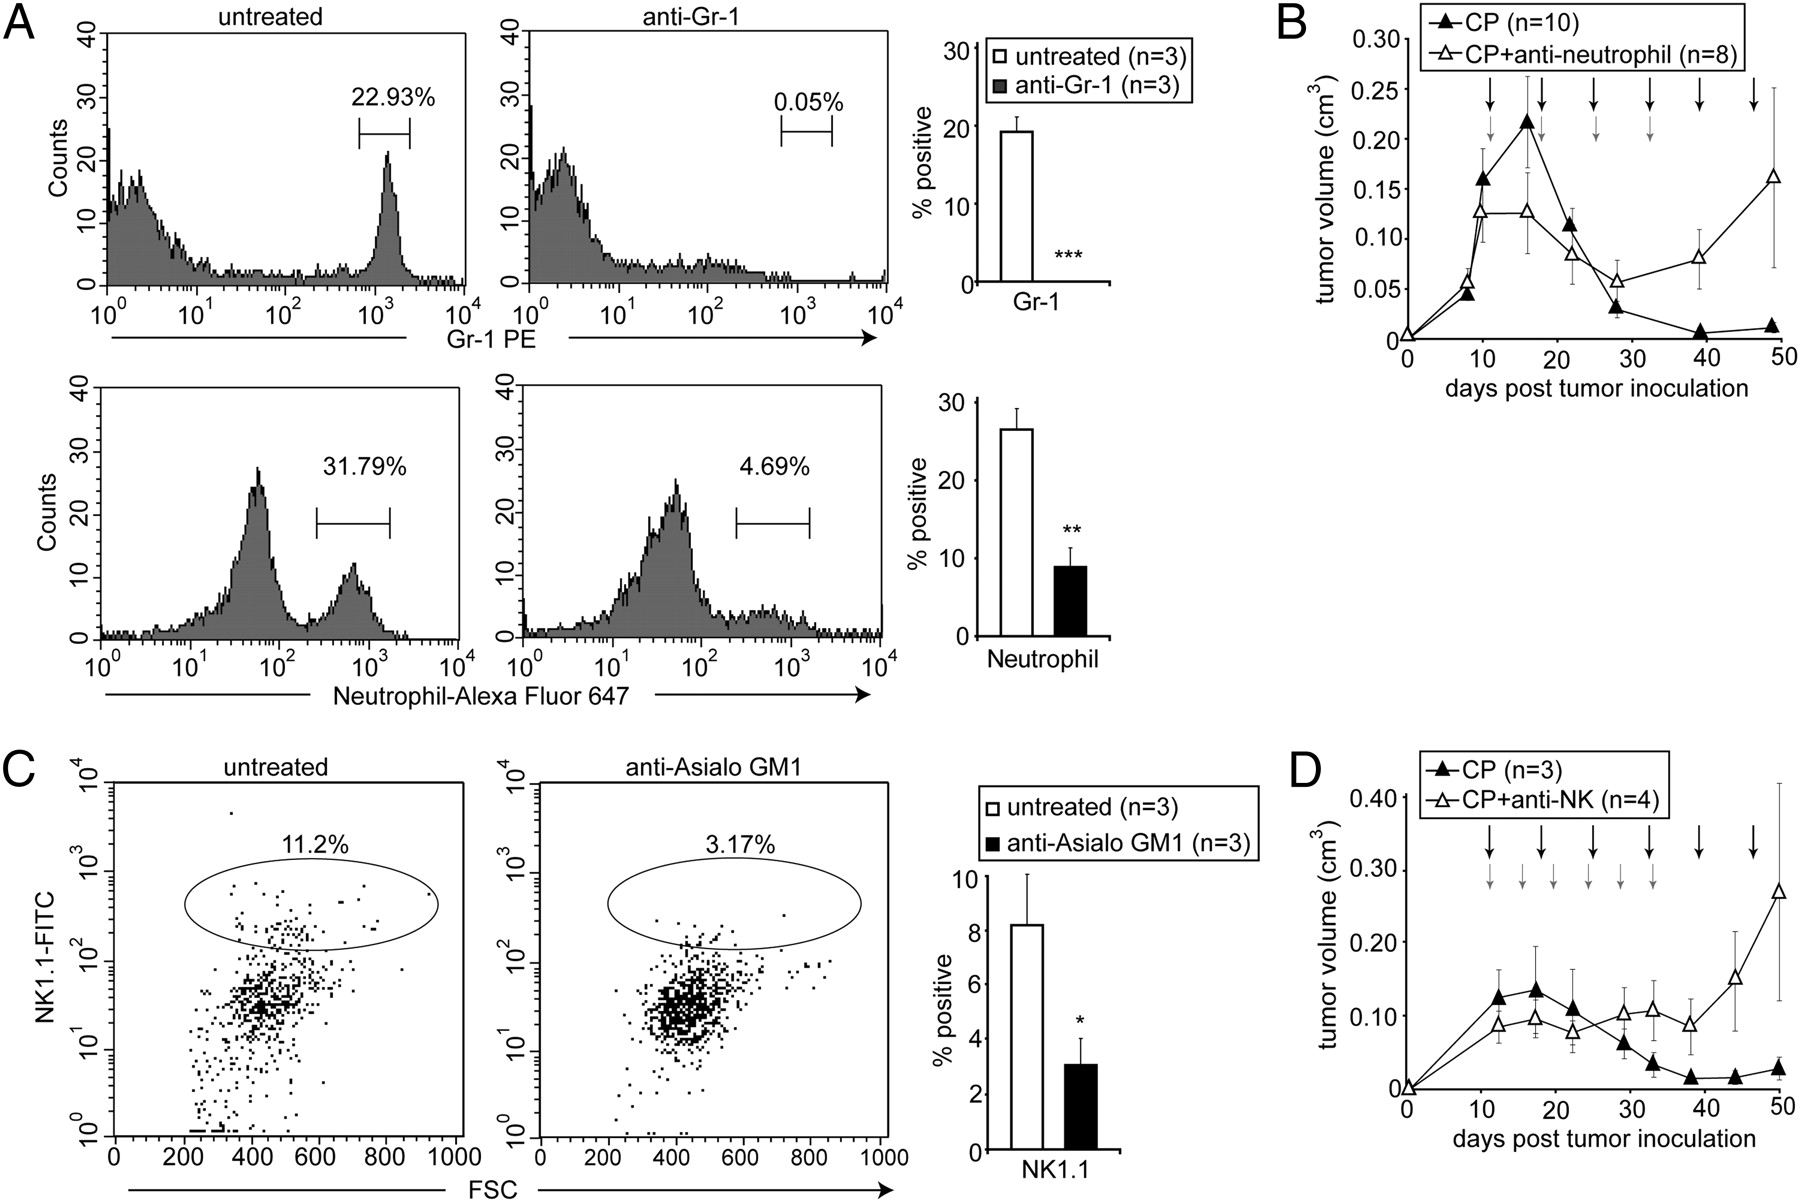 DNA Alkylating Therapy Induces Tumor Regression Through An HMGB1